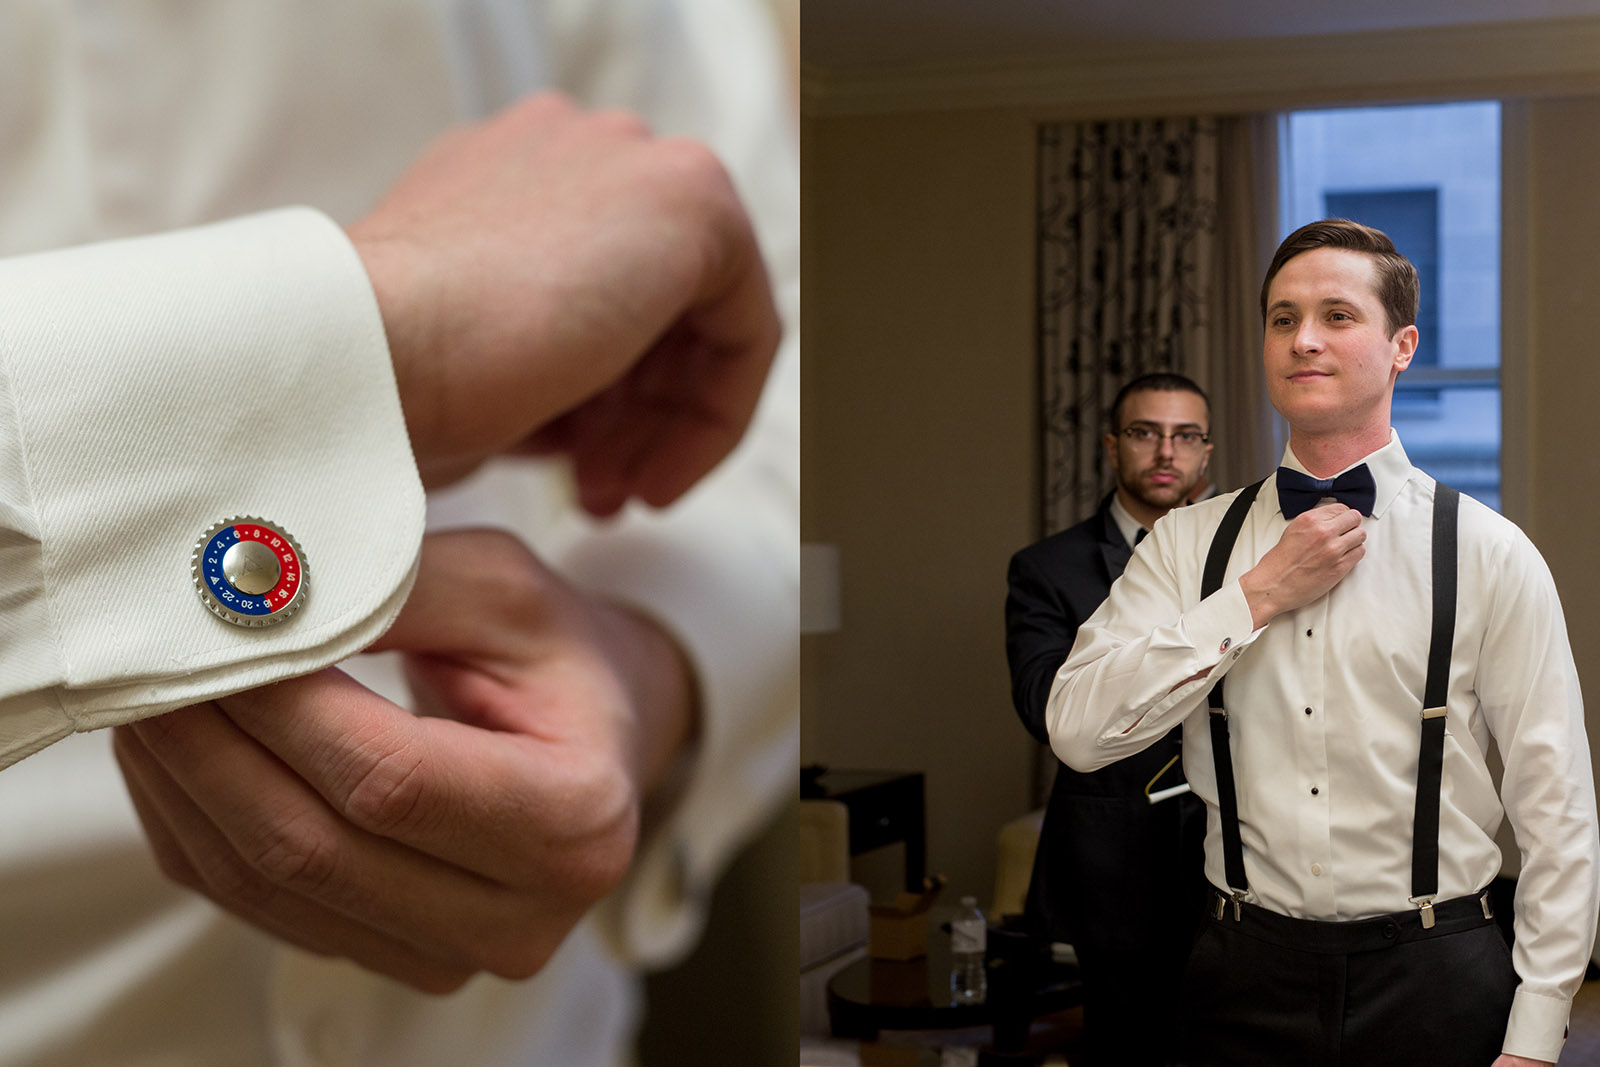 Cuff links Tie Groom Wedding